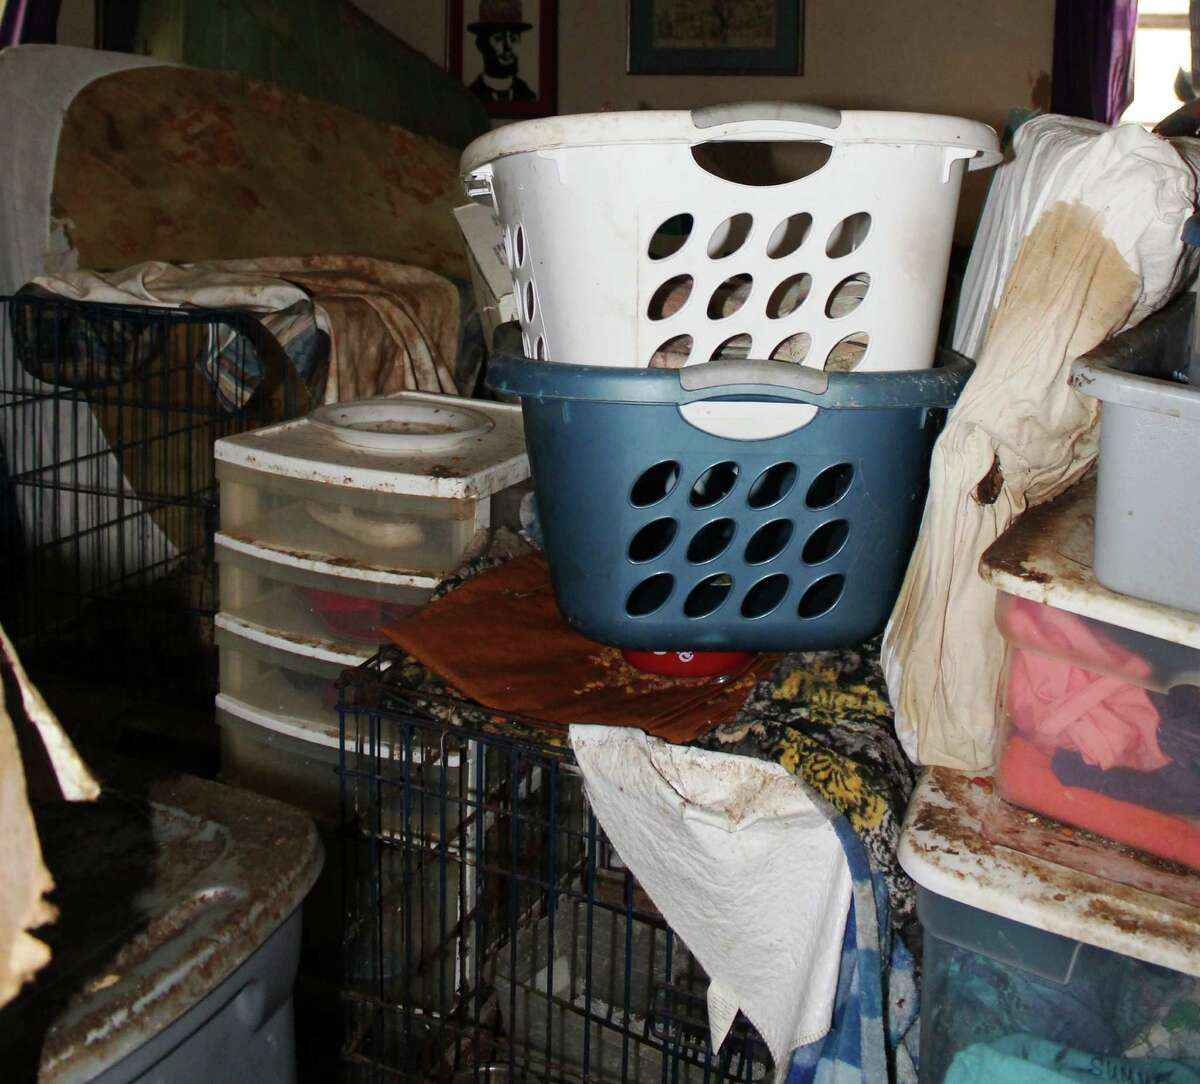 Animal Care Services seized 29 cats from a home on West Summit Aveune on March 29.